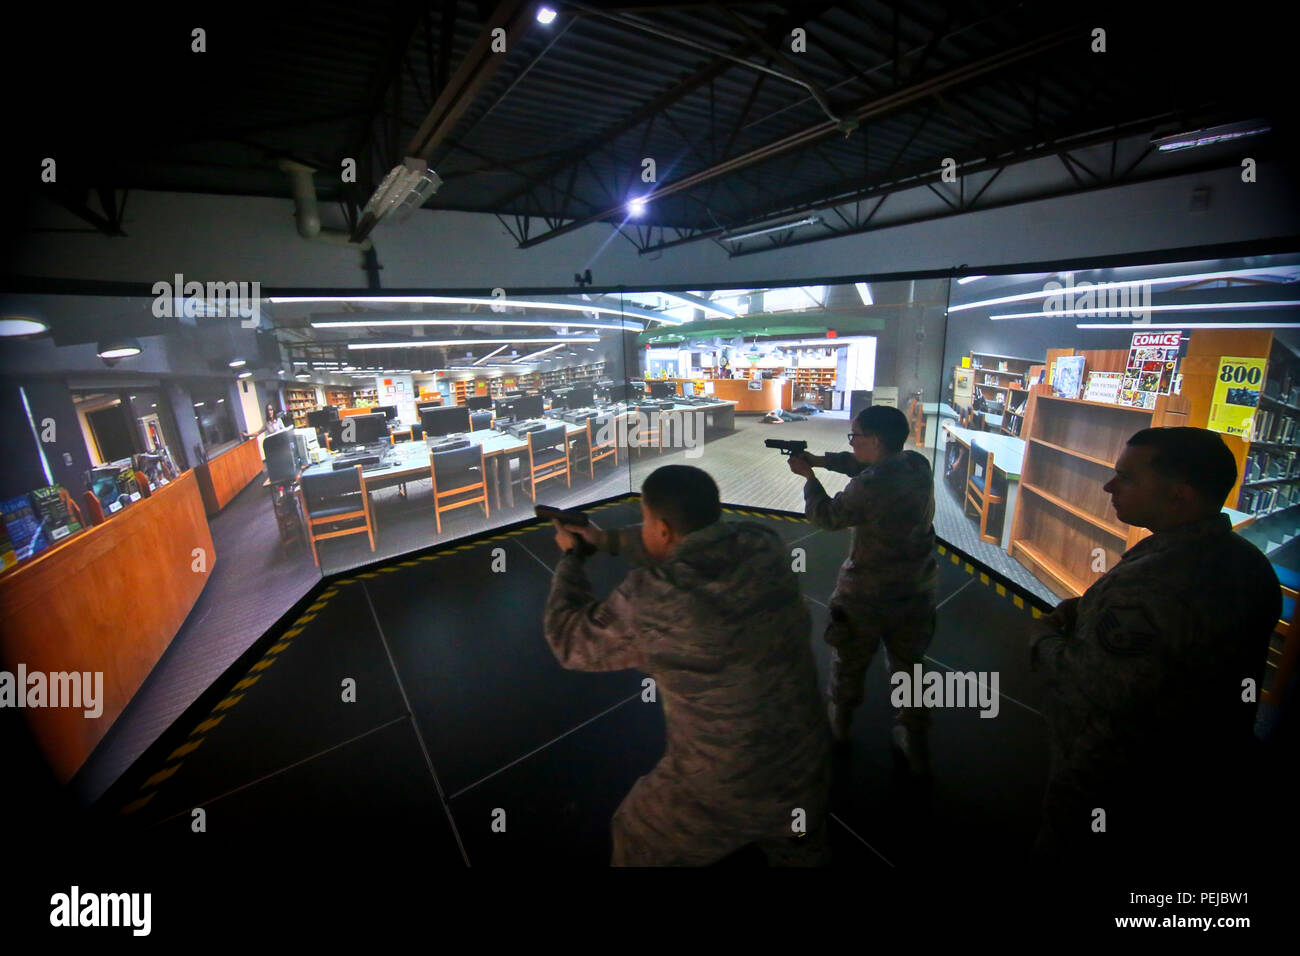 6 Shooter Stock Photos Images Alamy High Voltage Yard Training Simulator A Us Air Force Security Forces Airmen From The New Jersey National Guards 108th Wing